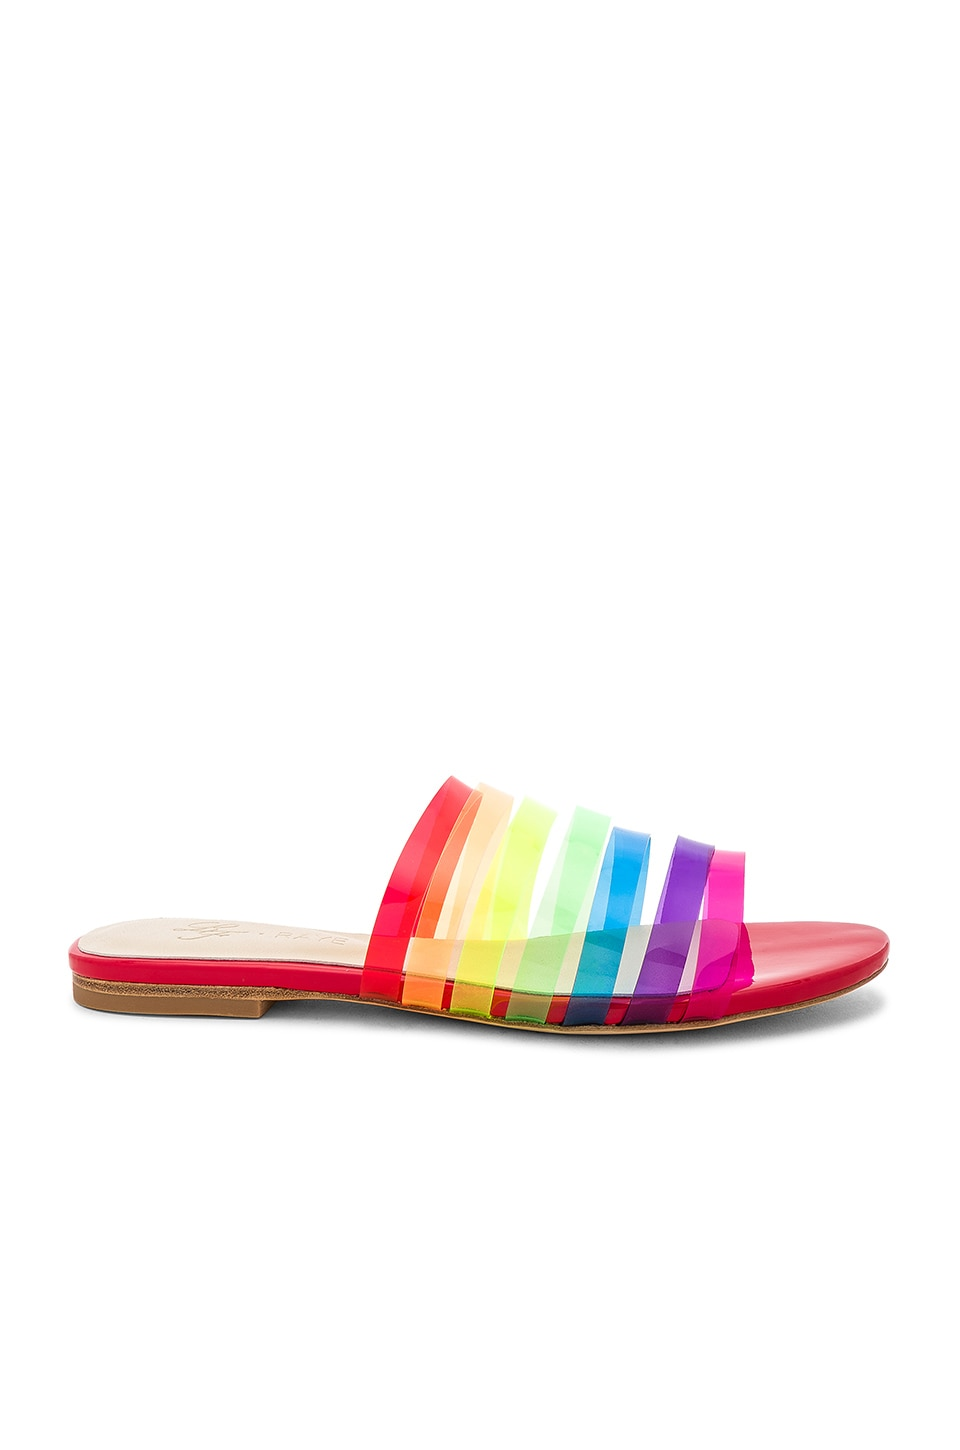 RAYE x Lovers + Friends Jorie Sandal in Multi